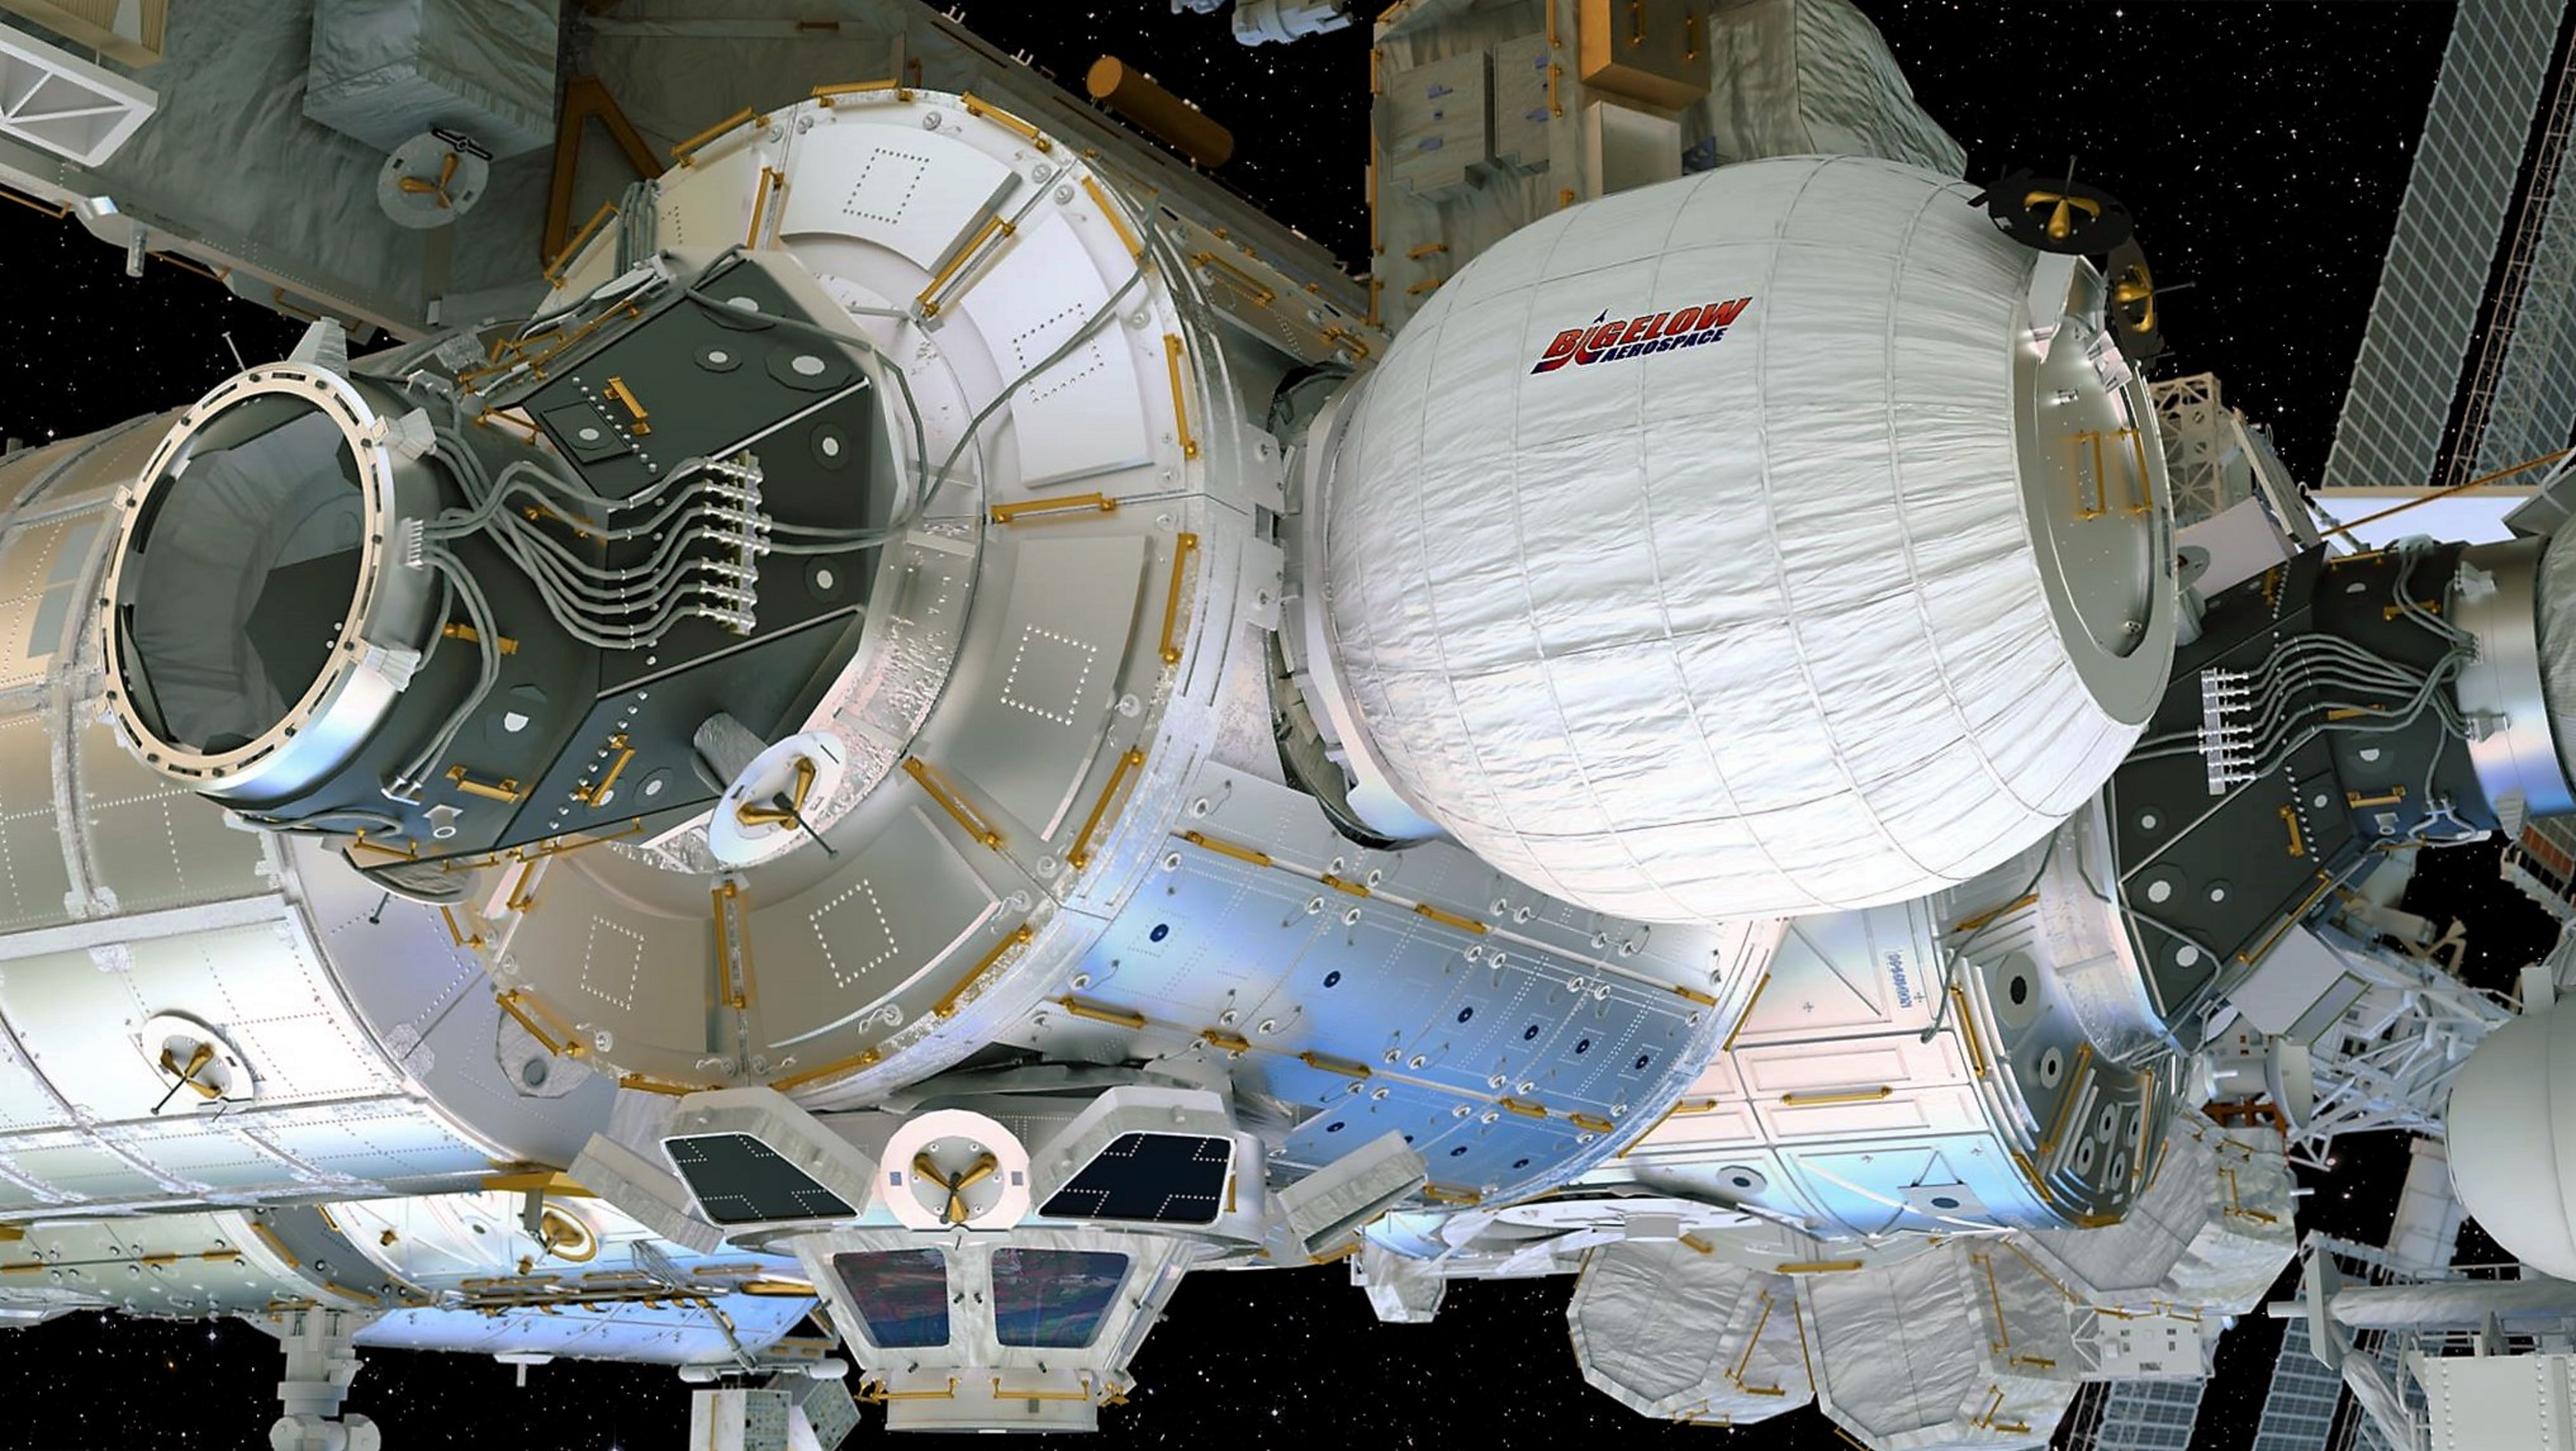 JAPANESE MISSIONS INTERNATIONAL SPACE station